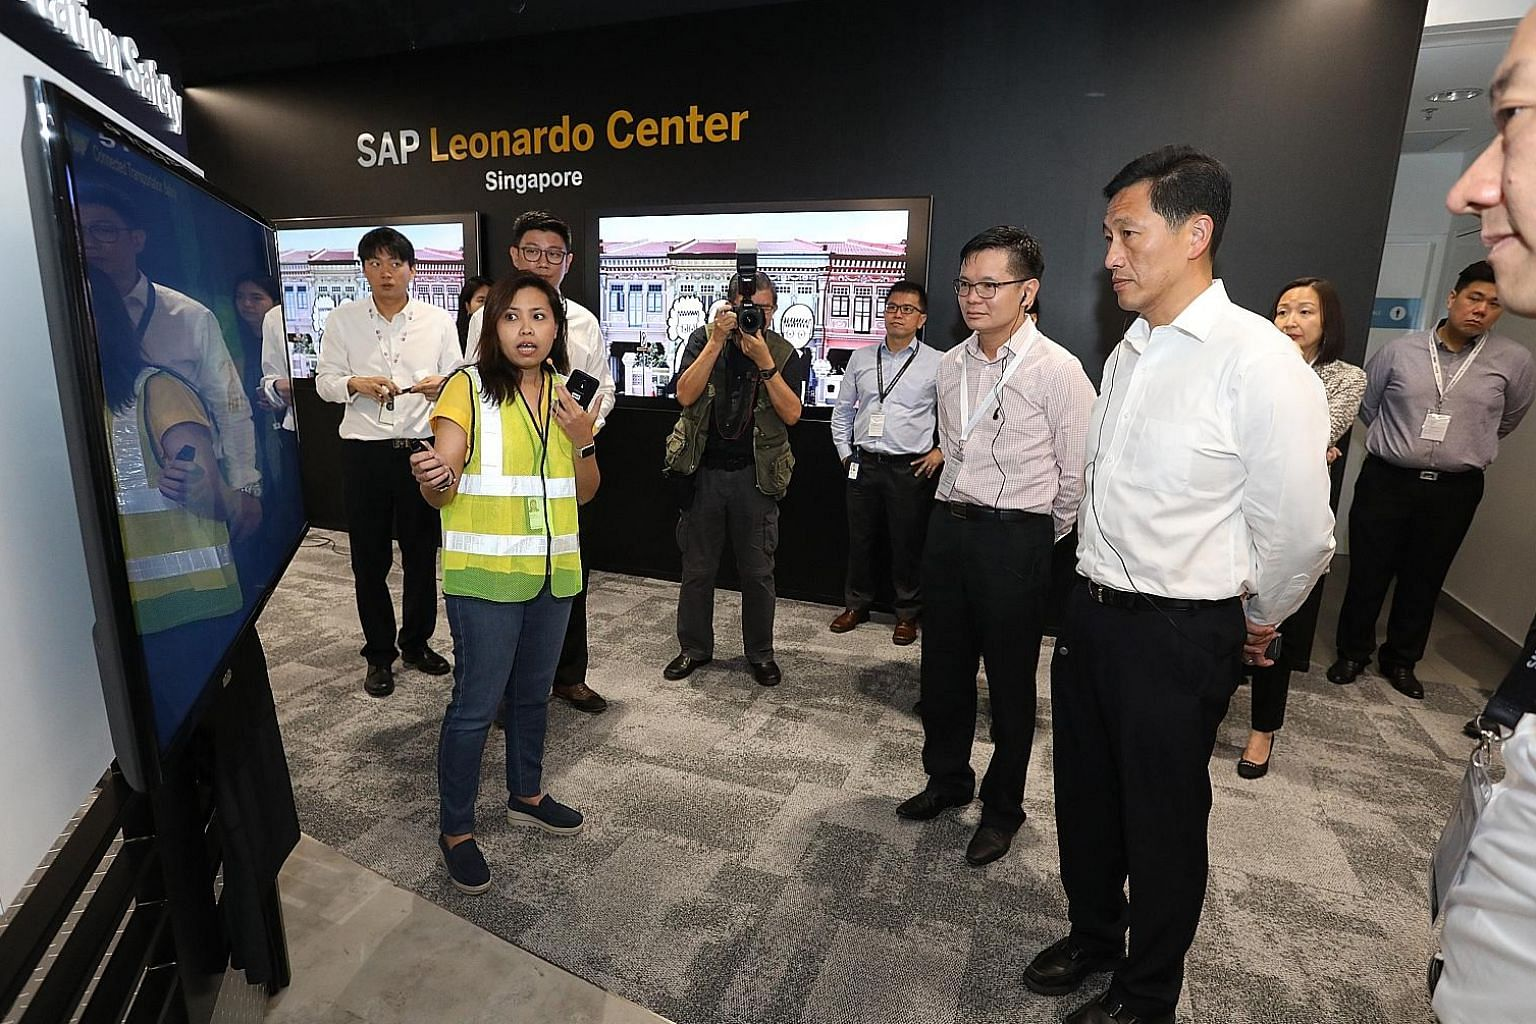 Minister for Education Ong Ye Kung (right) and SkillsFuture Singapore chief executive Ng Cher Pong on a tour of the SAP Leonardo Center Singapore, which showcases emerging and new technologies.